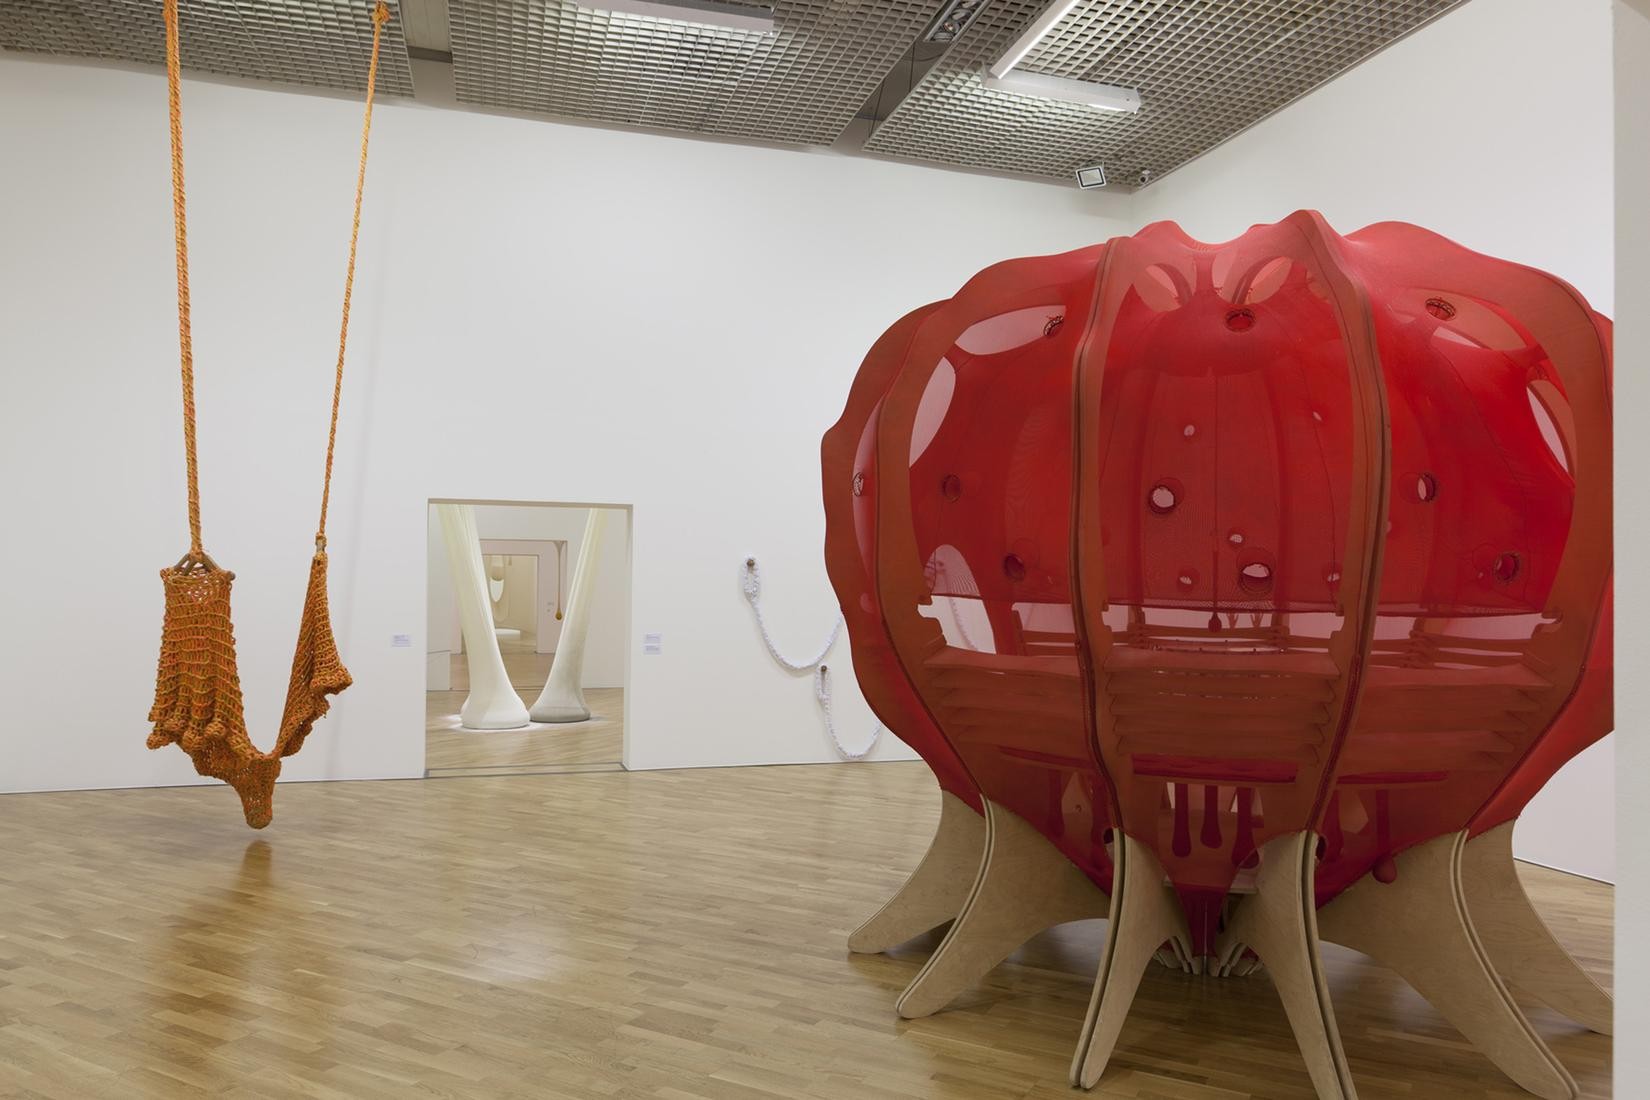 MARCH 30 — JULY 15, 2019 - PINACOTECA, SÃO PAULO - ERNESTO NETO: SOPRO (BLOW) -  - Exhibitions